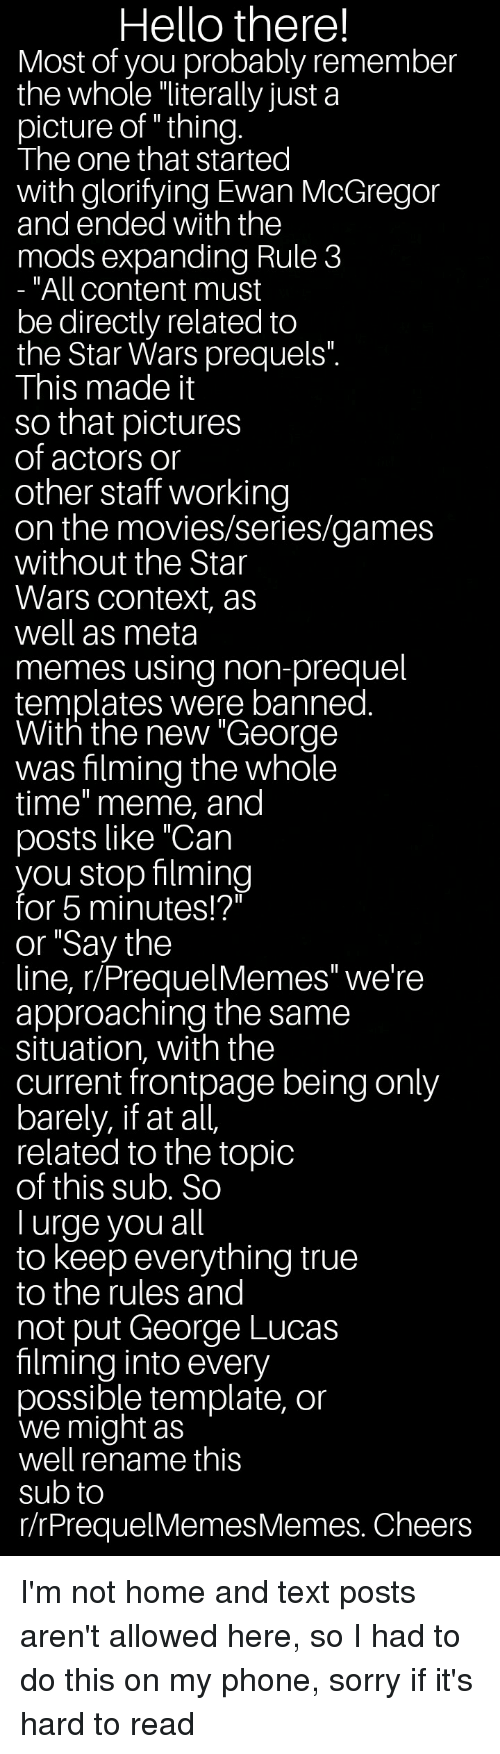 """Hello, Meme, and Memes: Hello there!  Most of you probably remember  the whole """"literally just a  picture of """" thing  The one that started  with glorifying Ewan McGregor  and ended with the  mods expanding Rule 3  All content must  be directly related to  the Star Wars prequels""""  This made it  so that pictures  of actors or  other staff working  on the movies/series/games  without the Star  Wars context, as  well as meta  memes using non-prequel  templates were banned  With the new George  was filming the whole  time"""" meme, and  posts like """"Can  you stop filming  for 5 minutes!?""""  or """"Say the  line, r/PrequelMemes"""" we're  approaching the same  situation, with the  current frontpage being only  barely, if at all,  related to the topic  of this sub, So  I urge you all  to keep everything true  to the rules and  not put George Lucas  filming into every  possible template, or  we might as  well rename this  sub to  r/rPrequelMemesMemes. Cheers"""